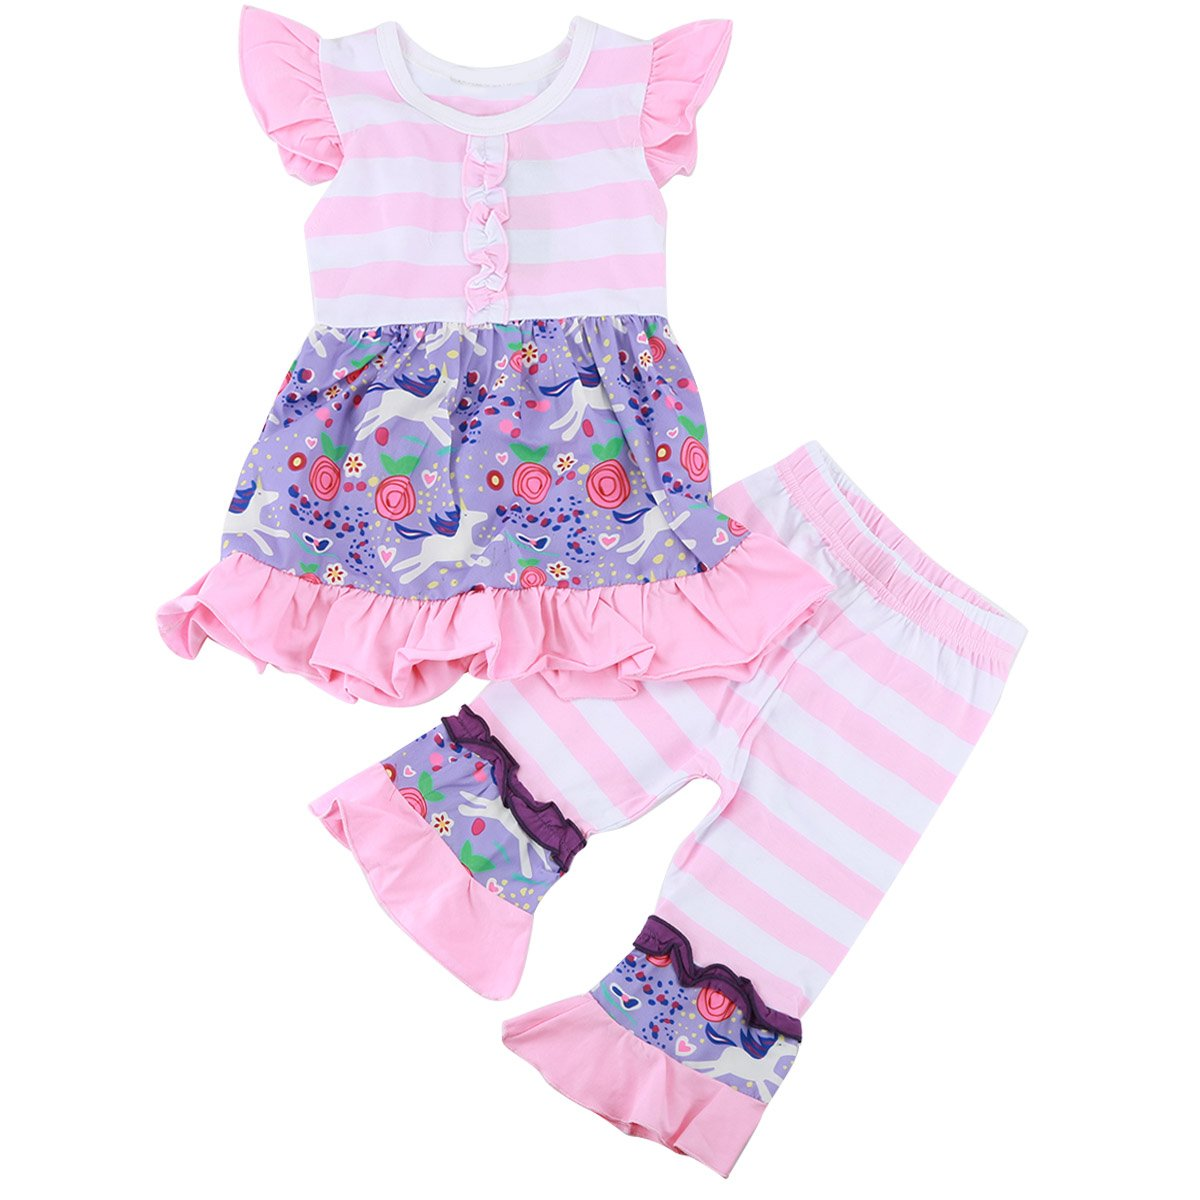 2Pcs Toddler Girls Sleeveless Pony Print Tops + Cropped Pants Ruffle Outfits Set (4T)